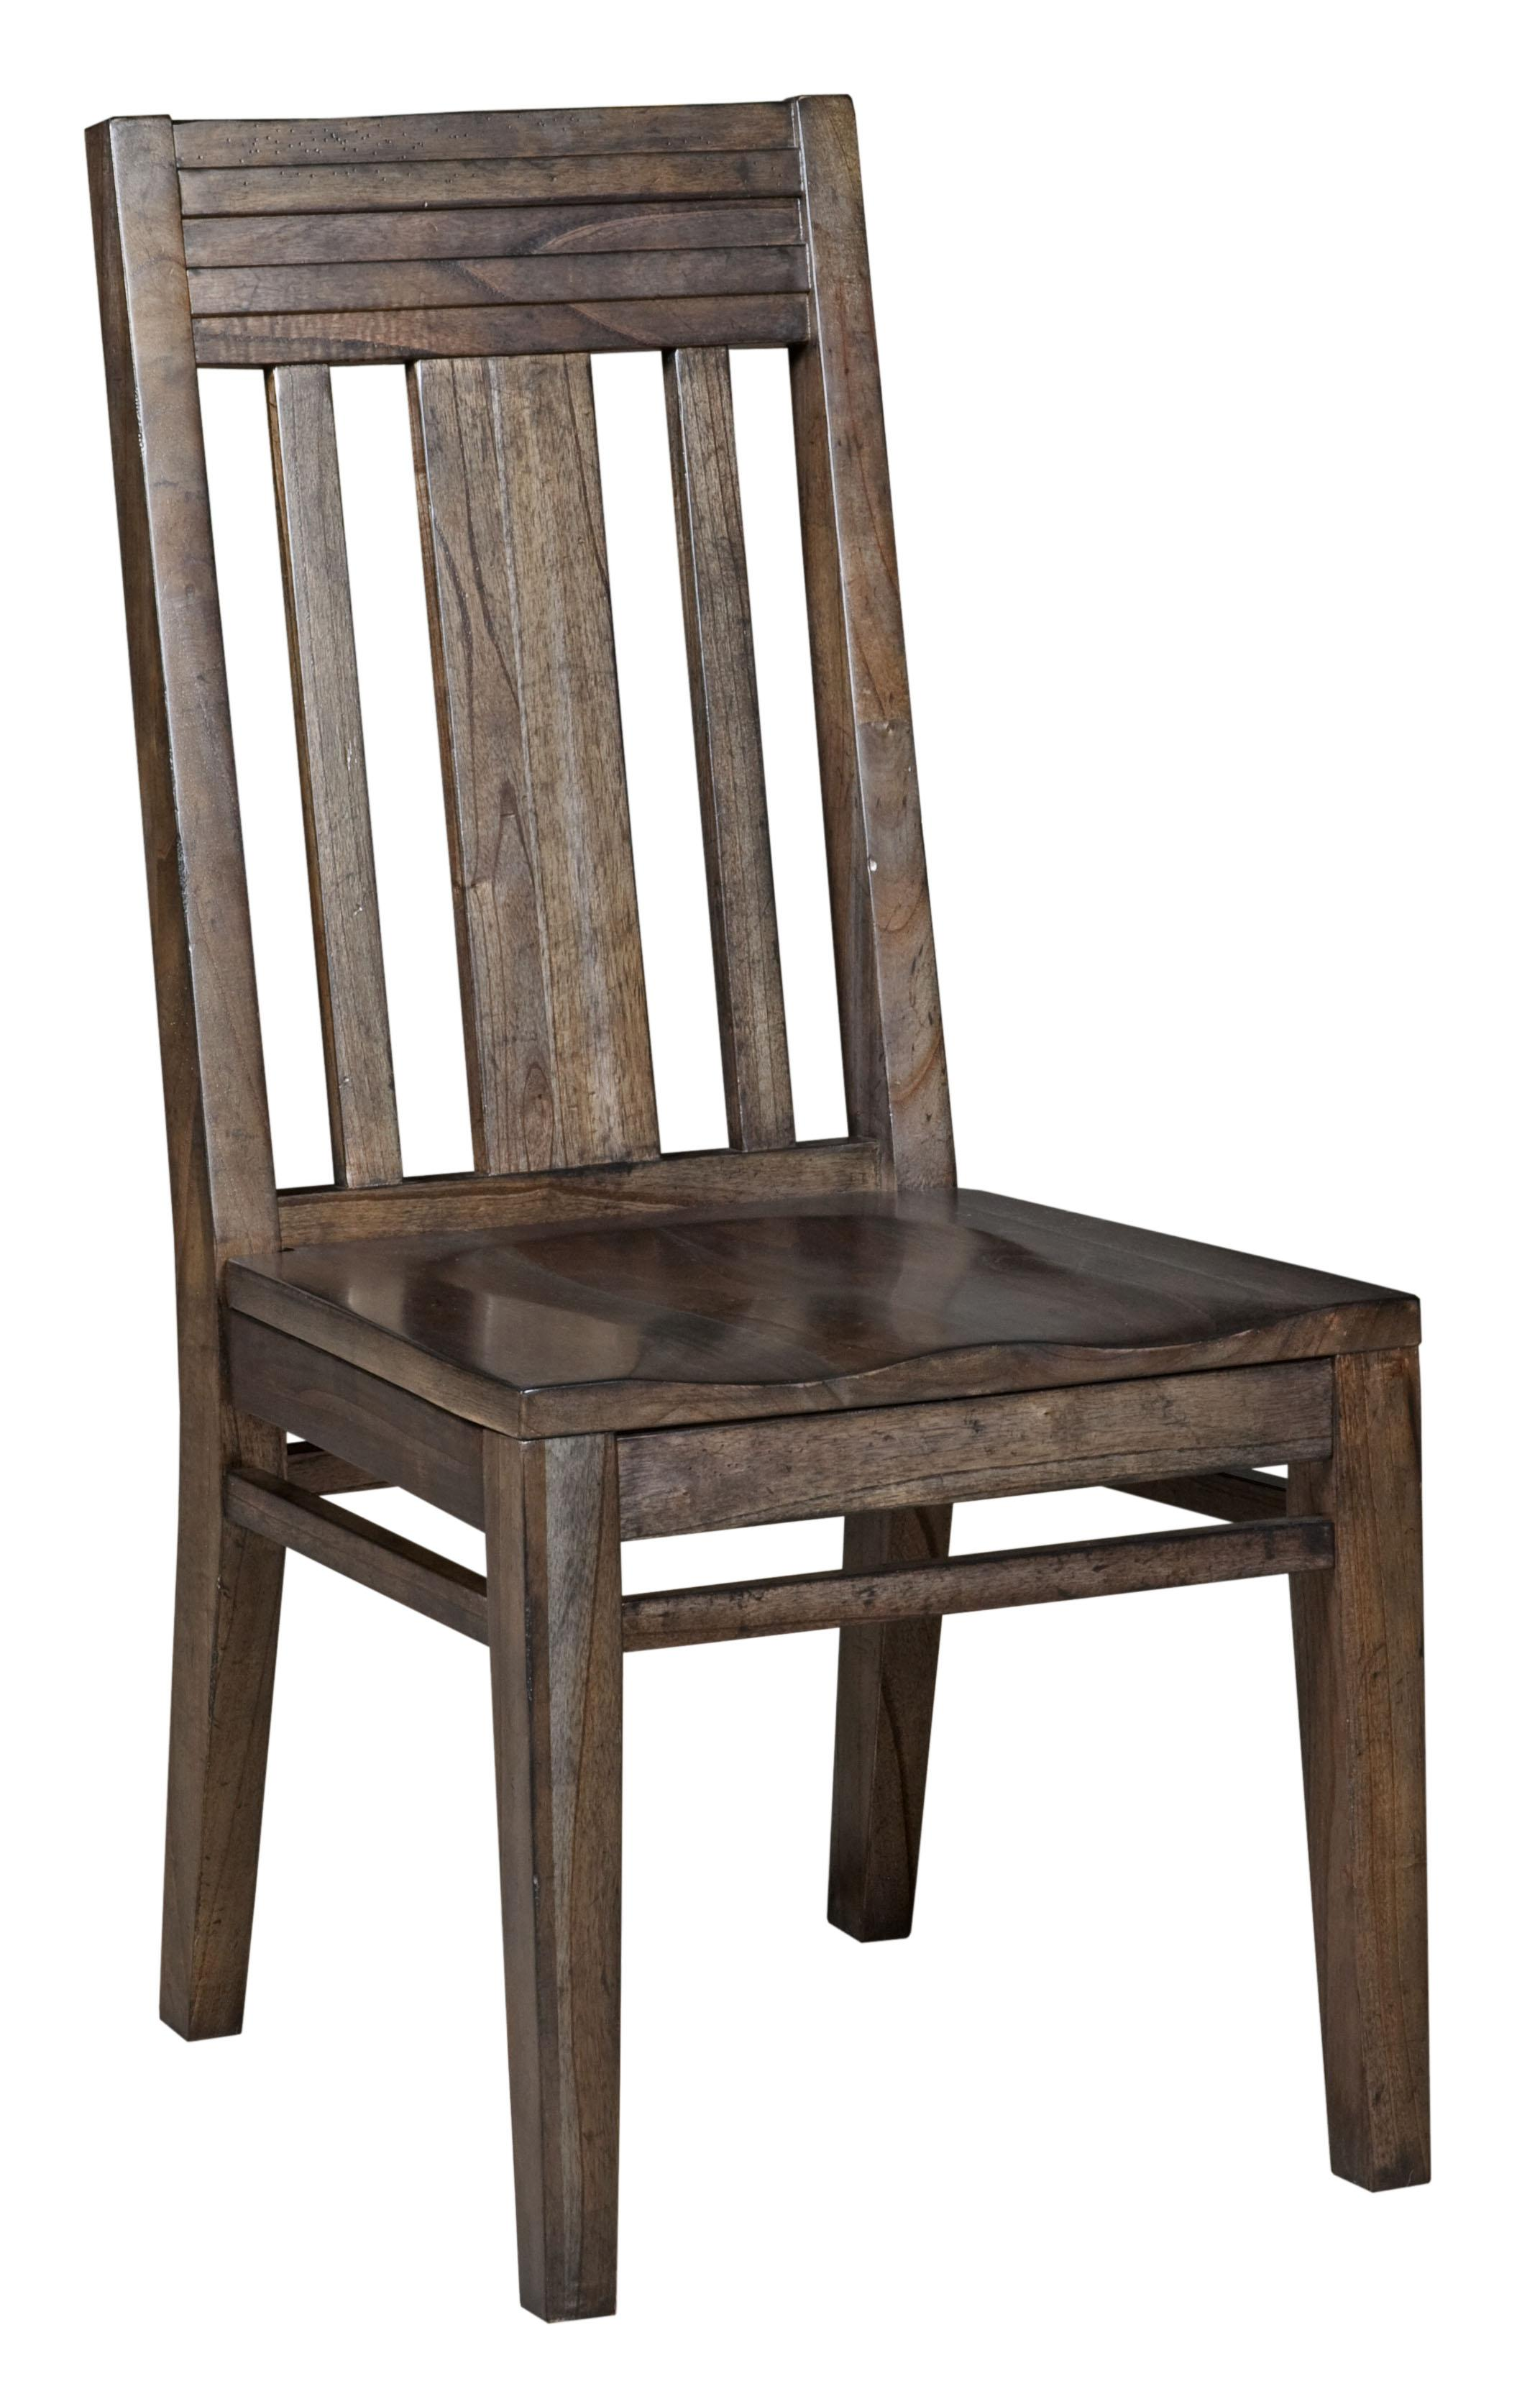 Kincaid Furniture Montreat Saluda Side Chair - Item Number: 84-061